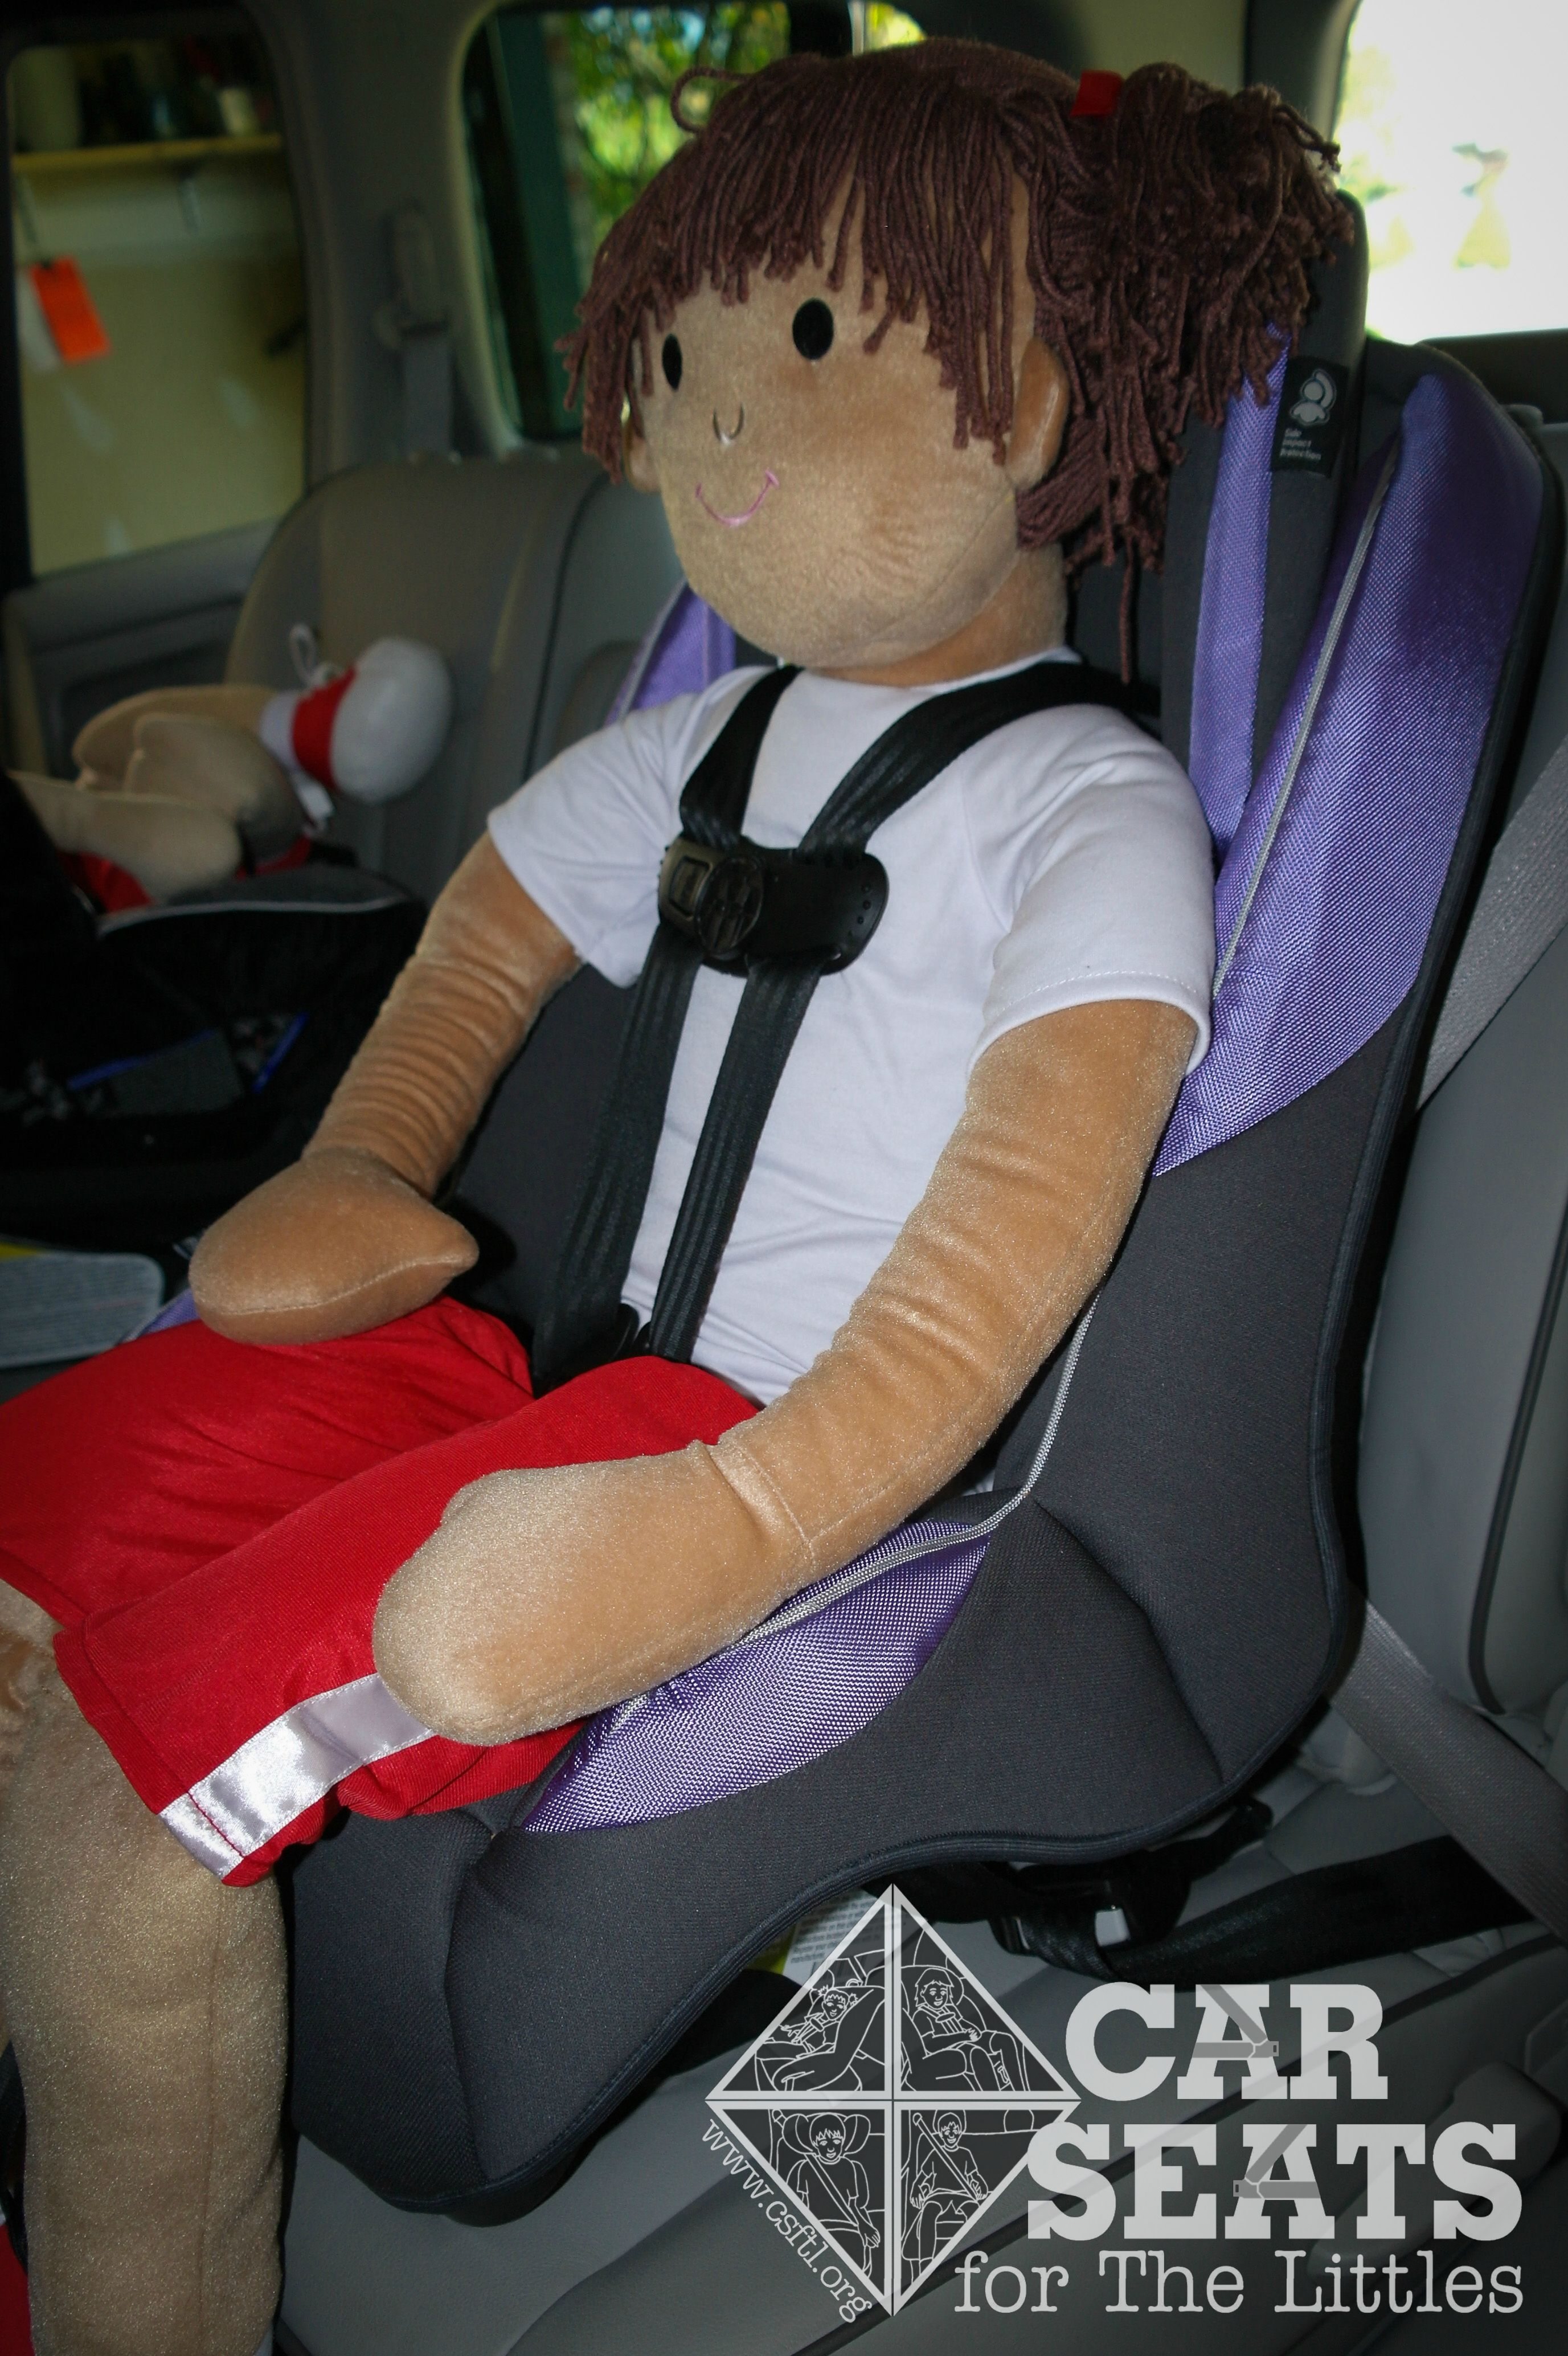 Carseatblog: the most trusted source for car seat reviews, ratings.